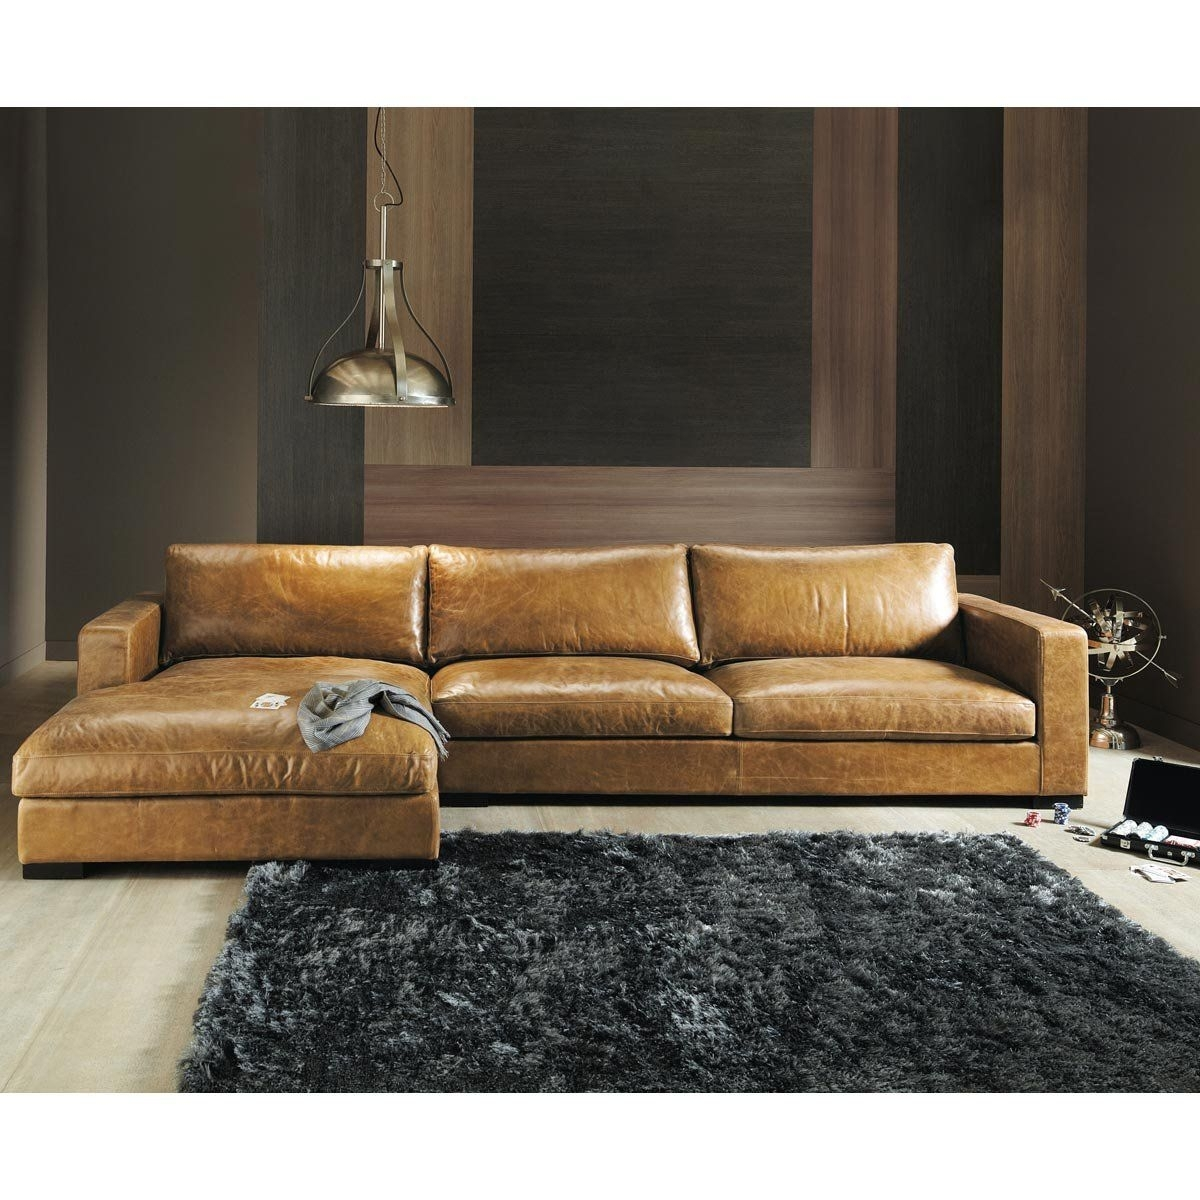 5 Seater Vintage Leather Corner Sofa, Camel | Sofa Seats, Leather With Regard To Camel Colored Sectional Sofas (View 9 of 10)